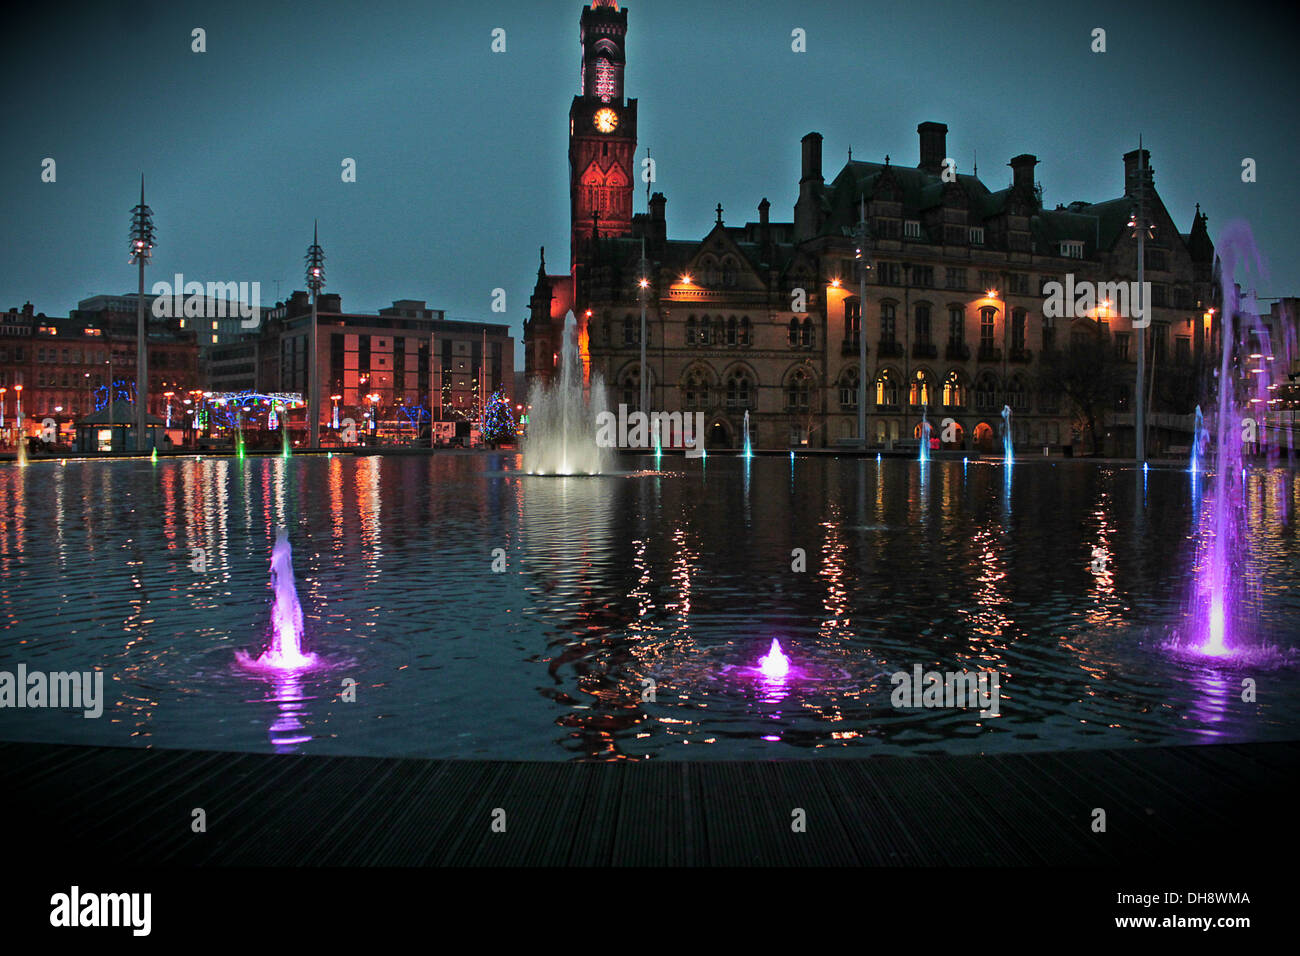 Bradford City Park, England at night with christmas lights ...